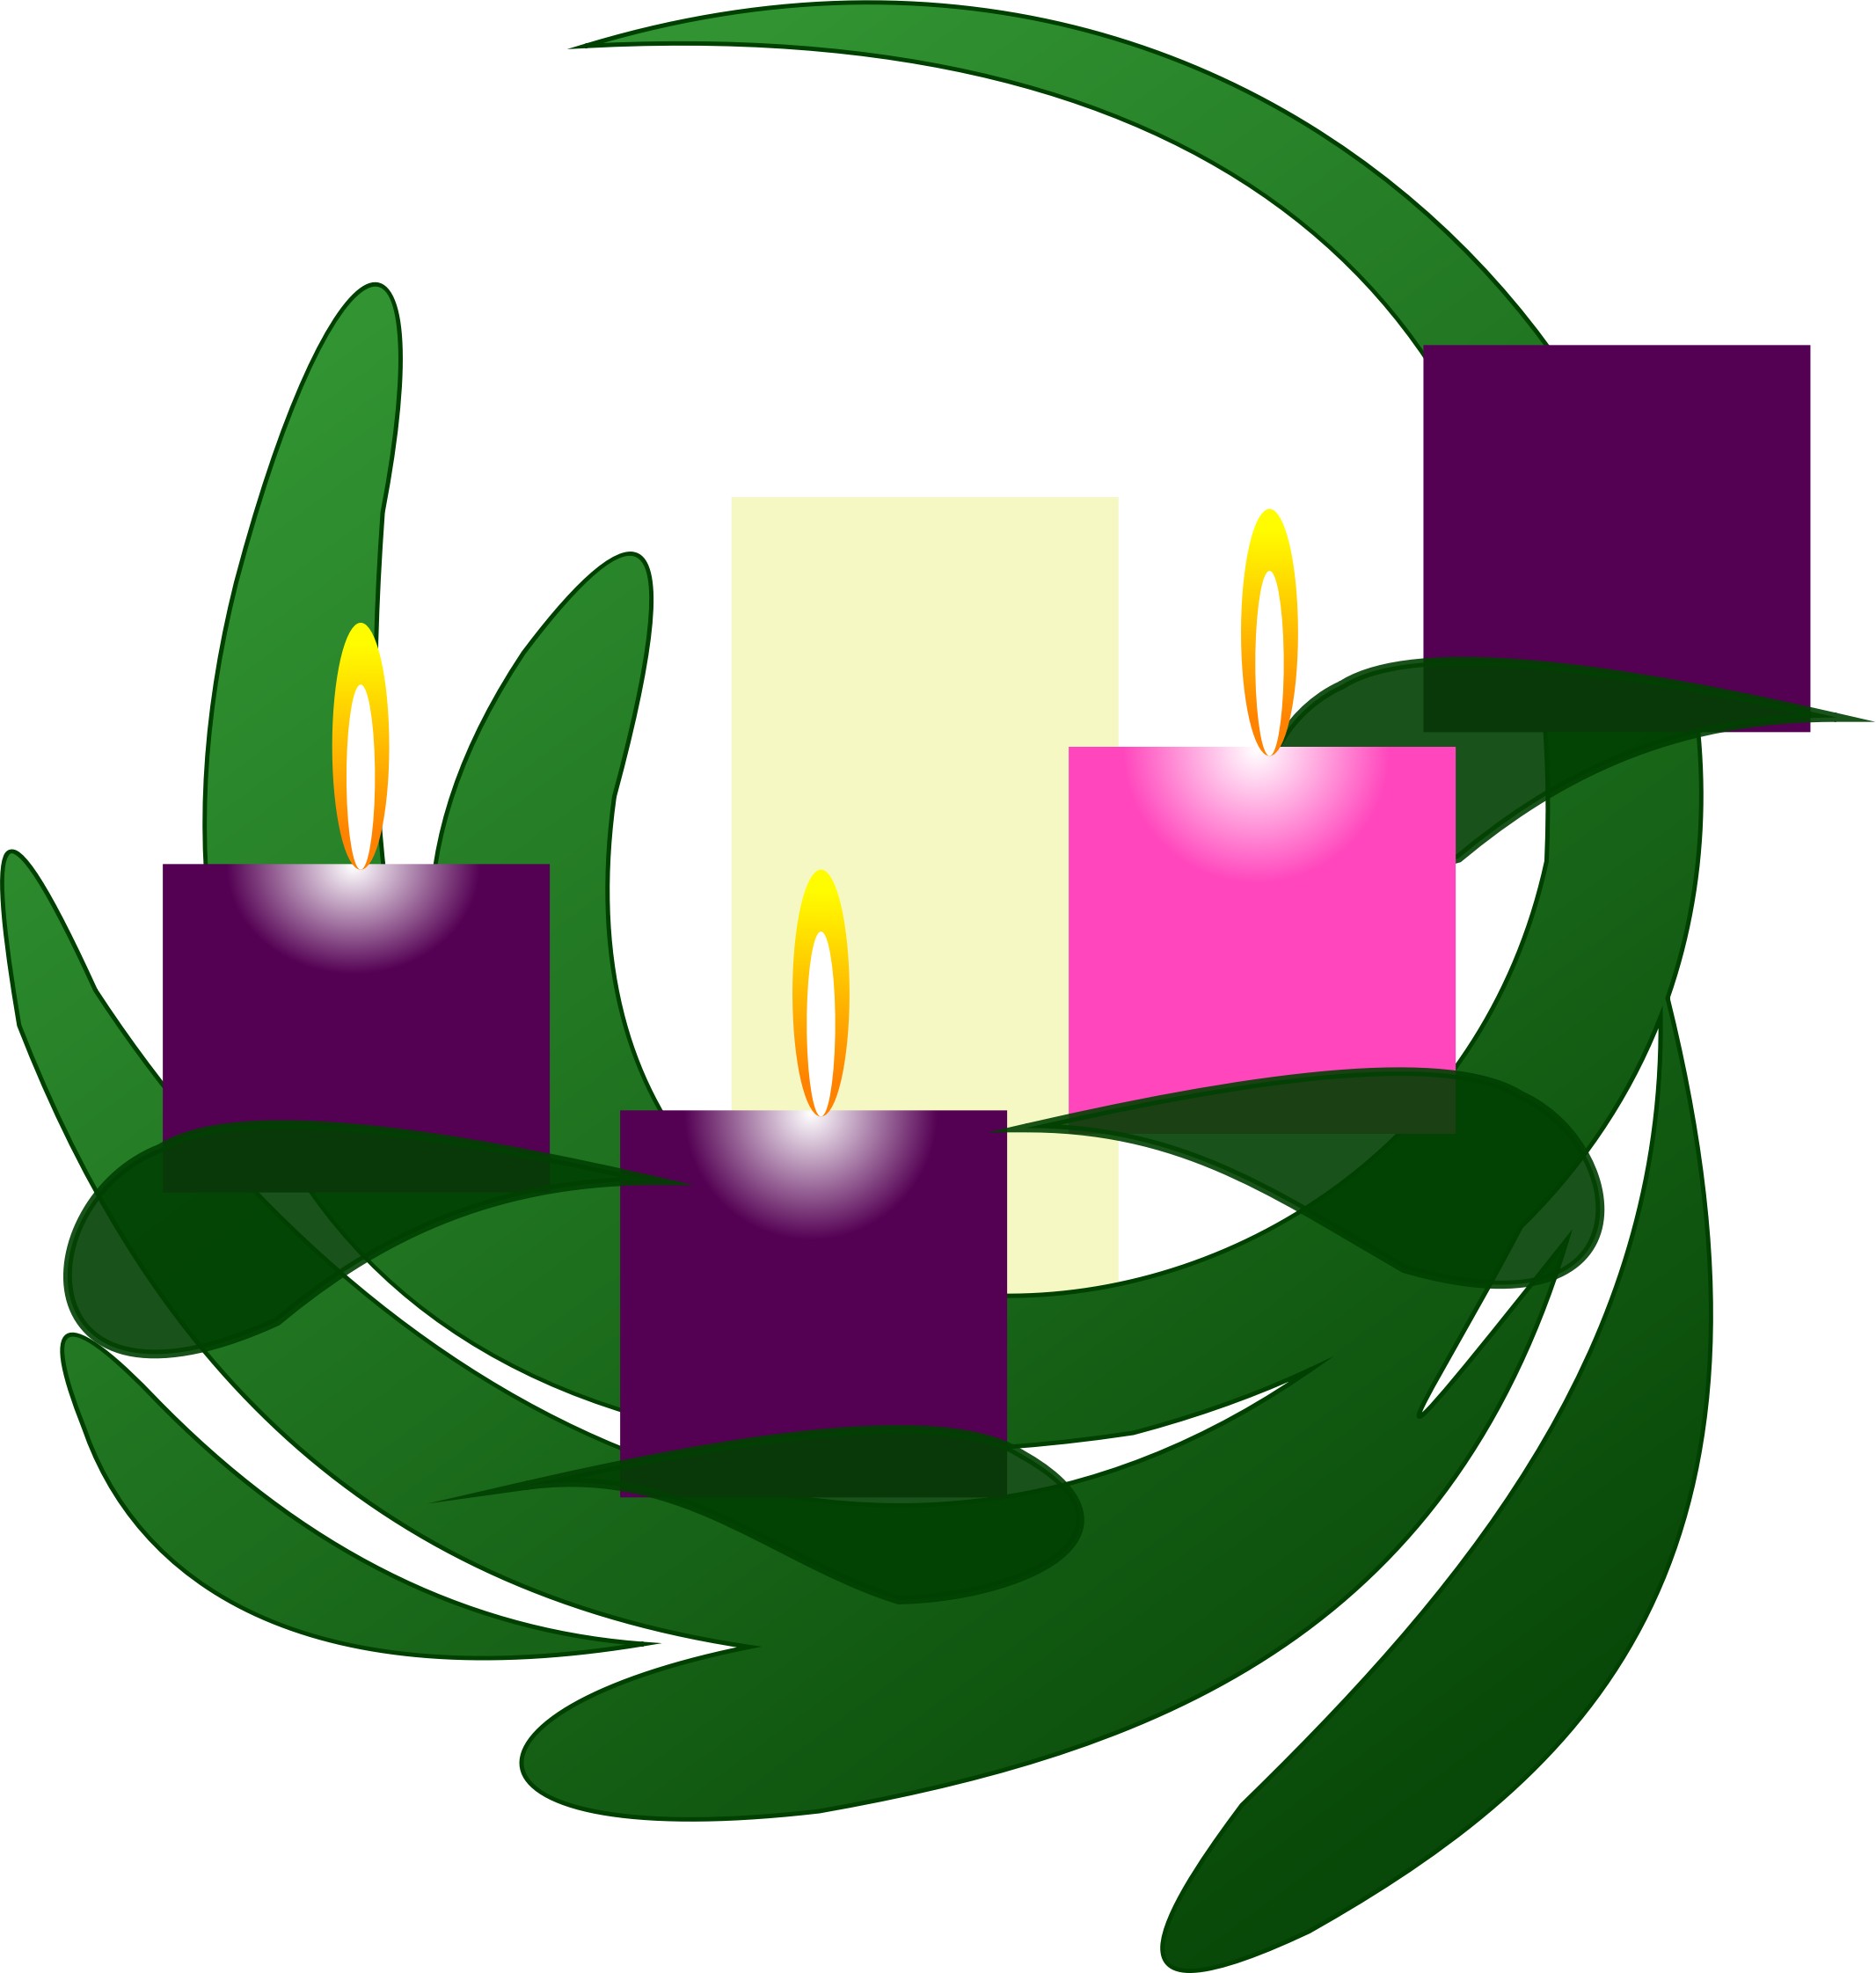 th sunday of. Advent clipart clip art